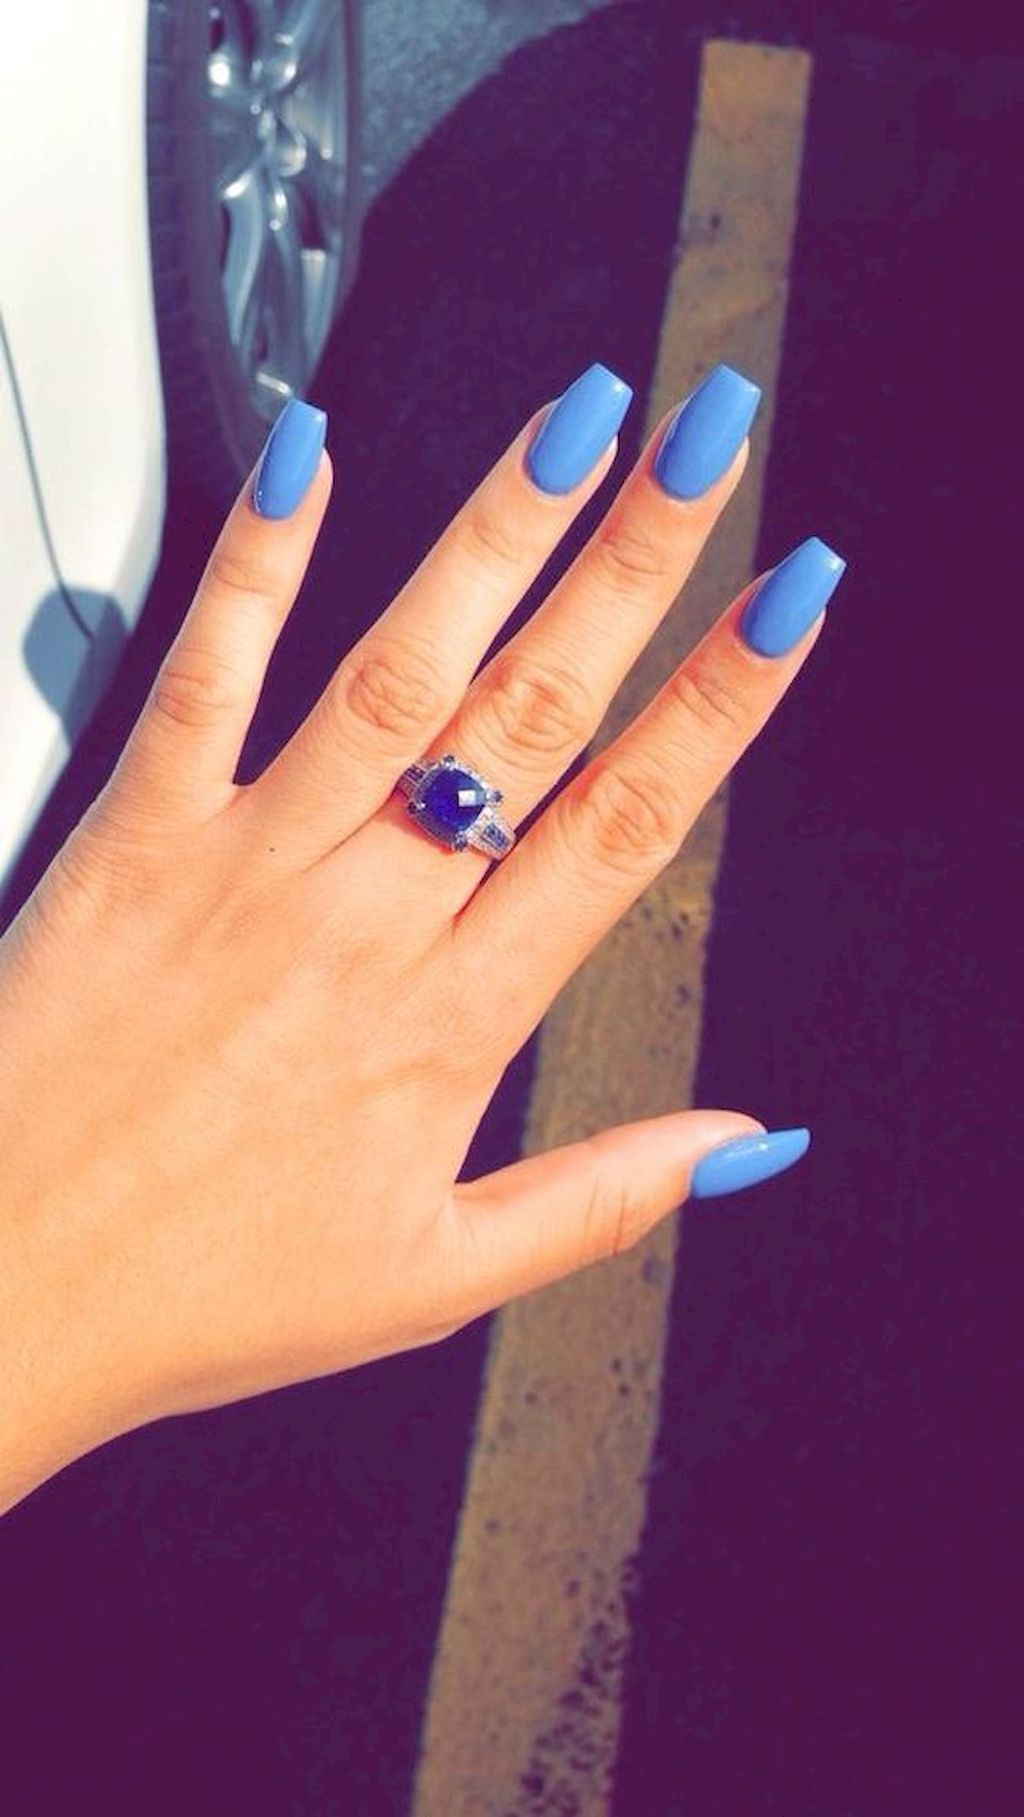 35 New Acrylic Nail Designs Ideas To Try This Year With Images Blue Nails Gorgeous Nails Pretty Nails